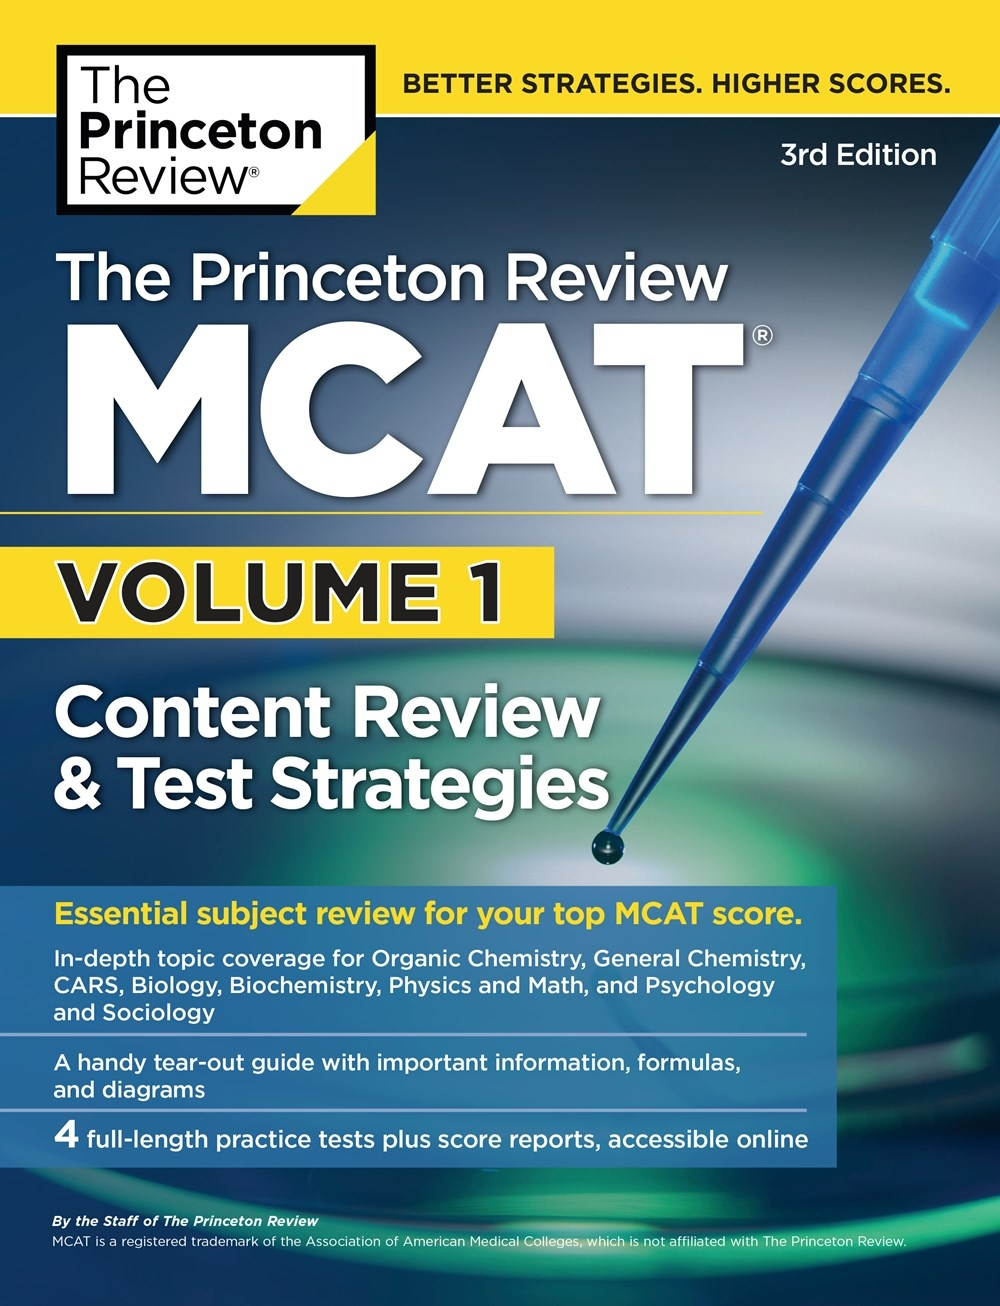 The Princeton Review MCAT, 3rd Edition by Princeton Review